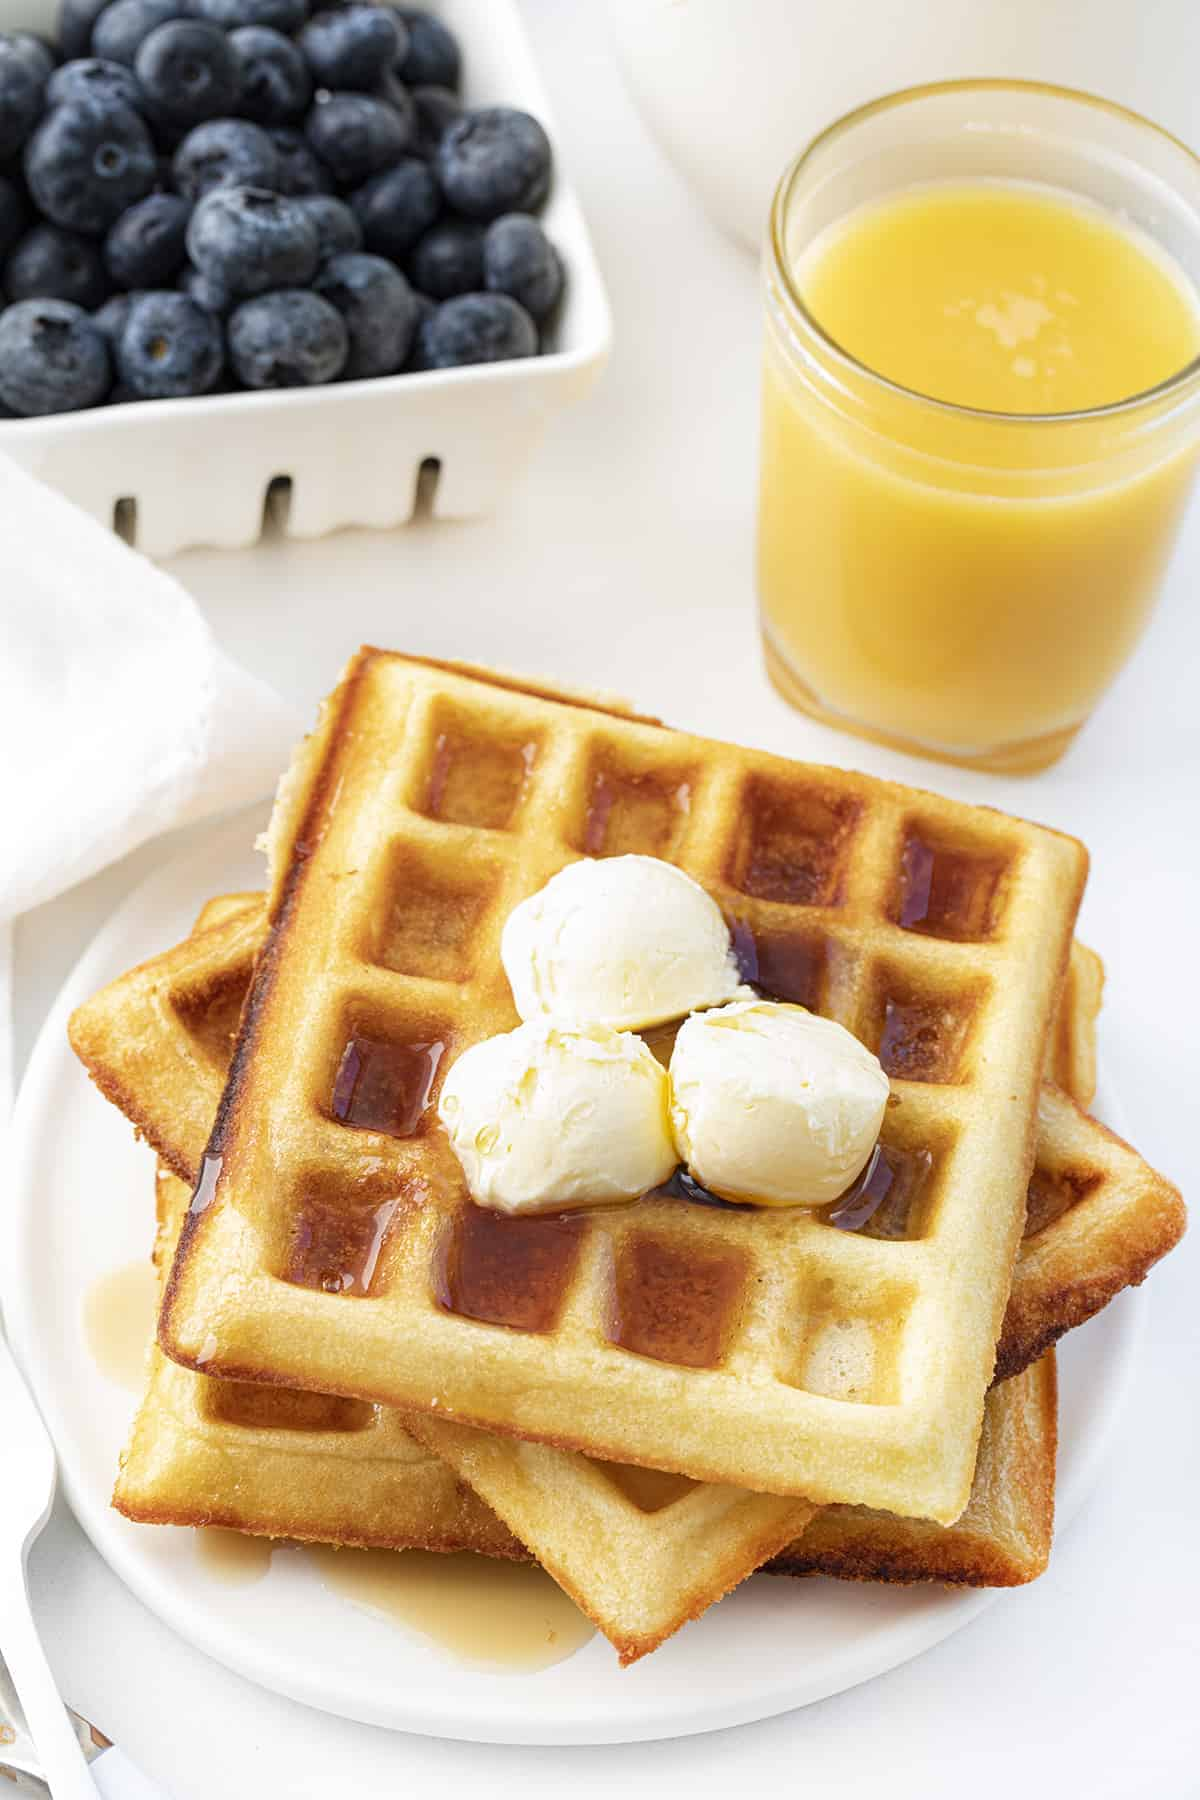 Waffles of Insane Greatness on Plate with Fruit and Butter